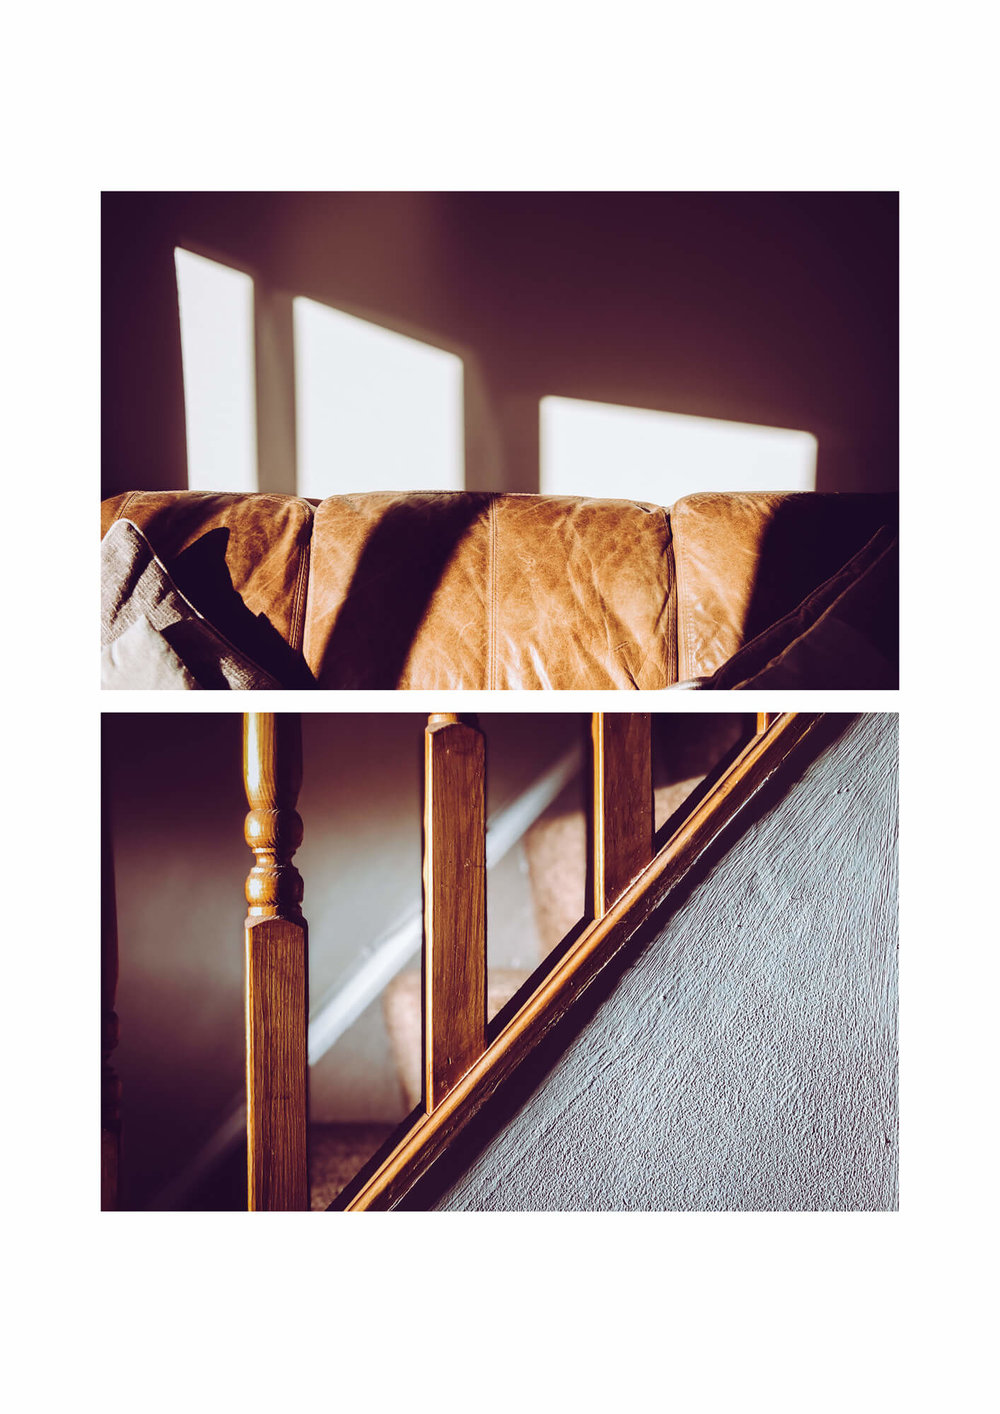 sunlight shining through a window onto the brown banister of a staircase